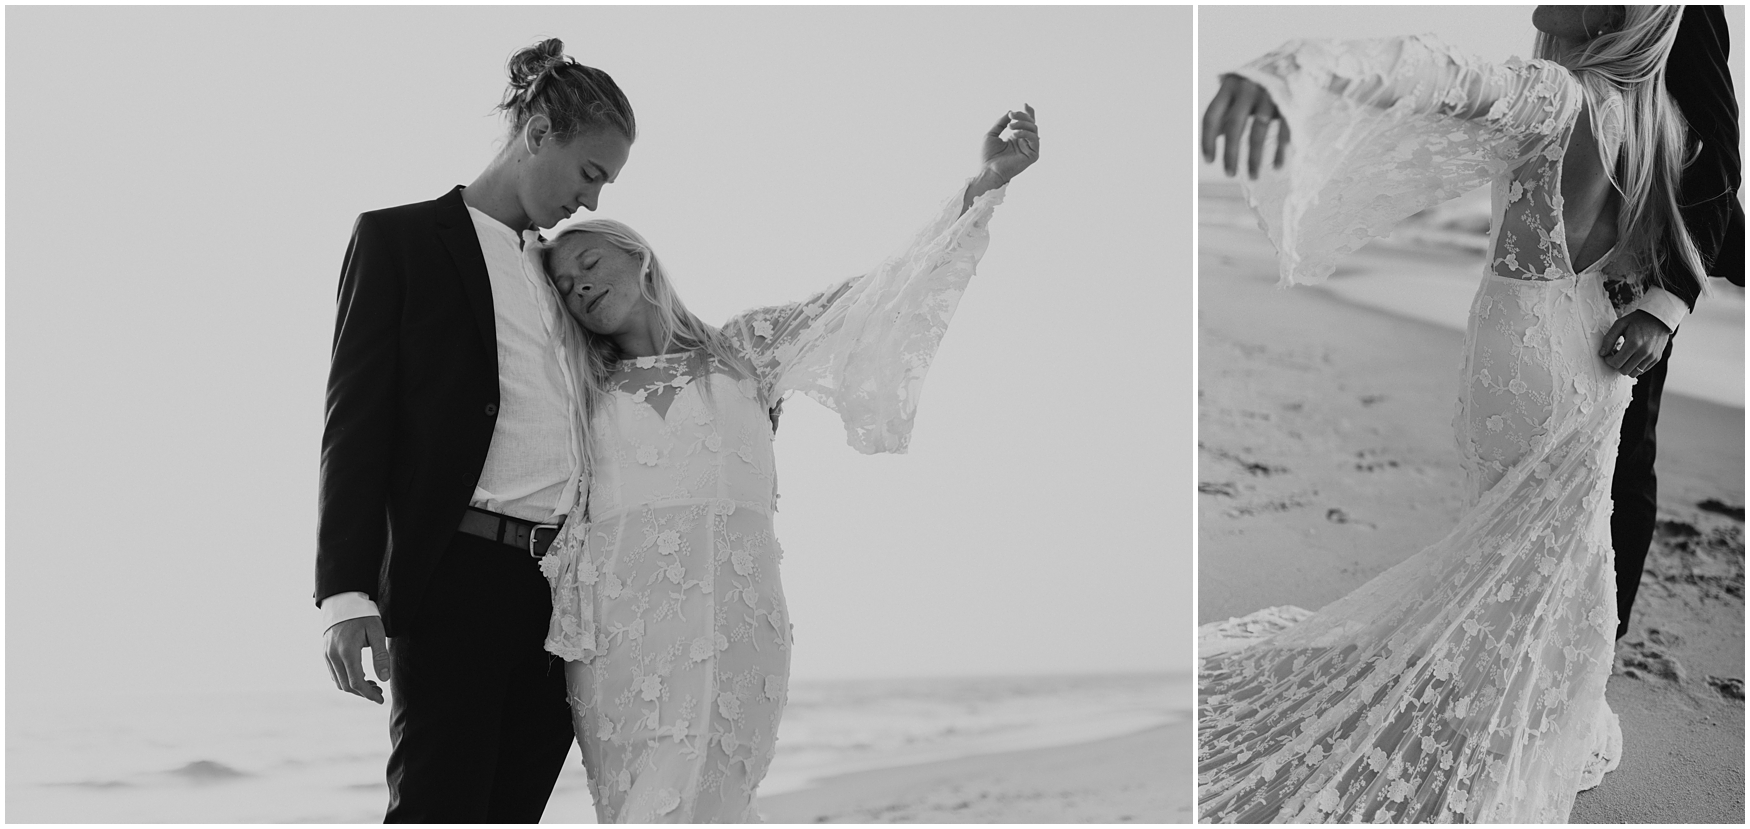 Hannah_Baldwin_Photography_Virginia_Beach_Elopement_Sunrise_0183.jpg